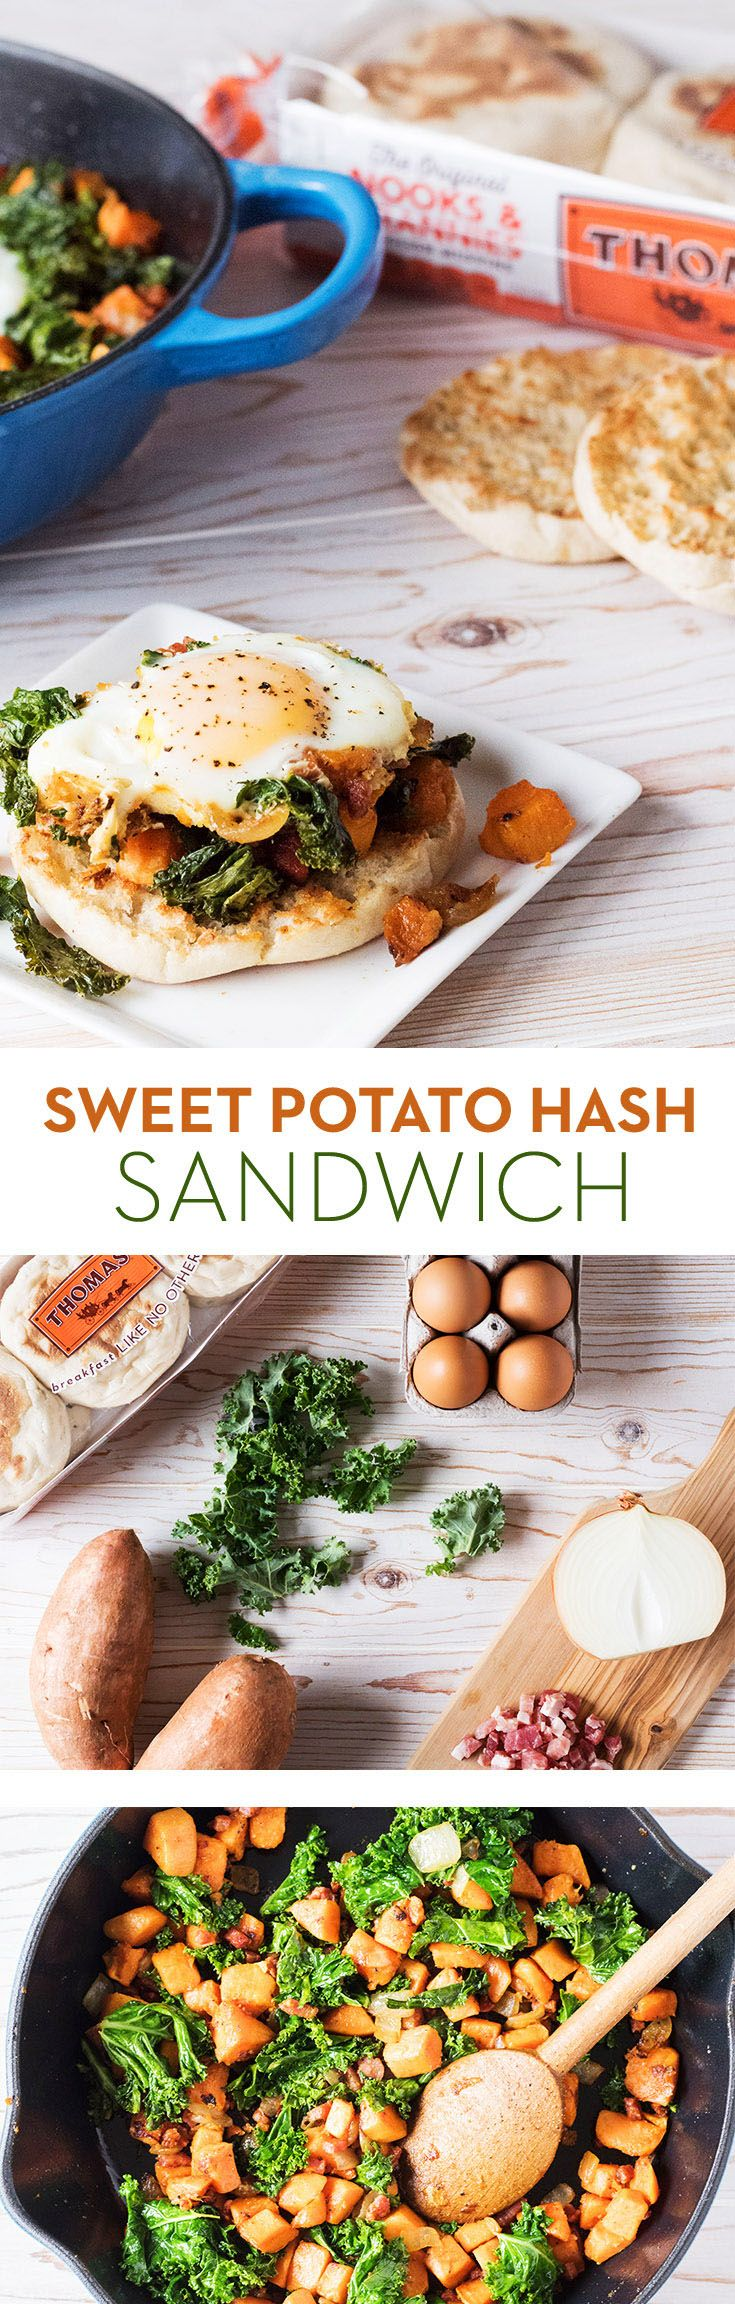 Sweet Potato Hash Sandwich: Whip up a breakfast that's hearty and wholesome. Sautéed onion, pancetta, sweet potato and kale hash goes great with an over easy egg atop a toasted Thomas' English Muffin.